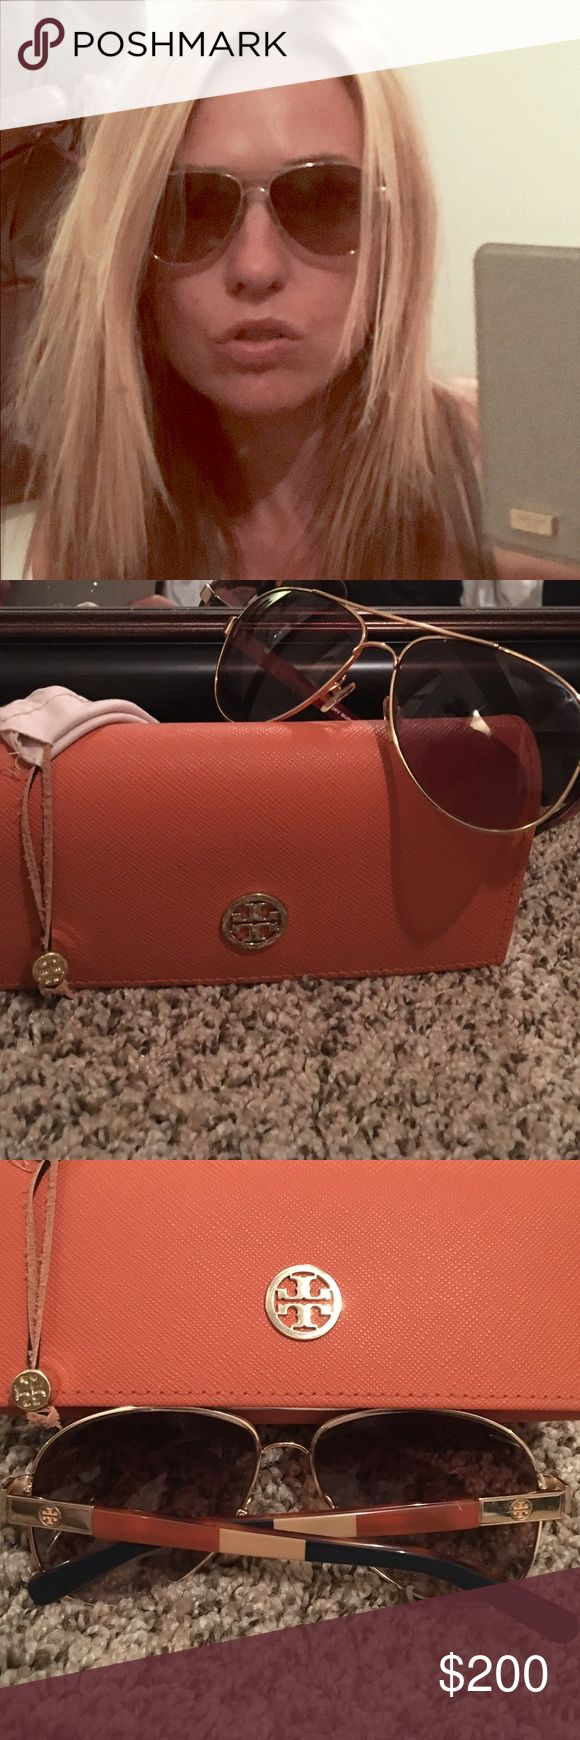 Tory Burch Gold Aviators Tory Burch Gold Aviators with brown, blue, tan & gold Tory Burch symbol.  In good condition with all original items from Sunglass hut. Tory Burch Accessories Glasses